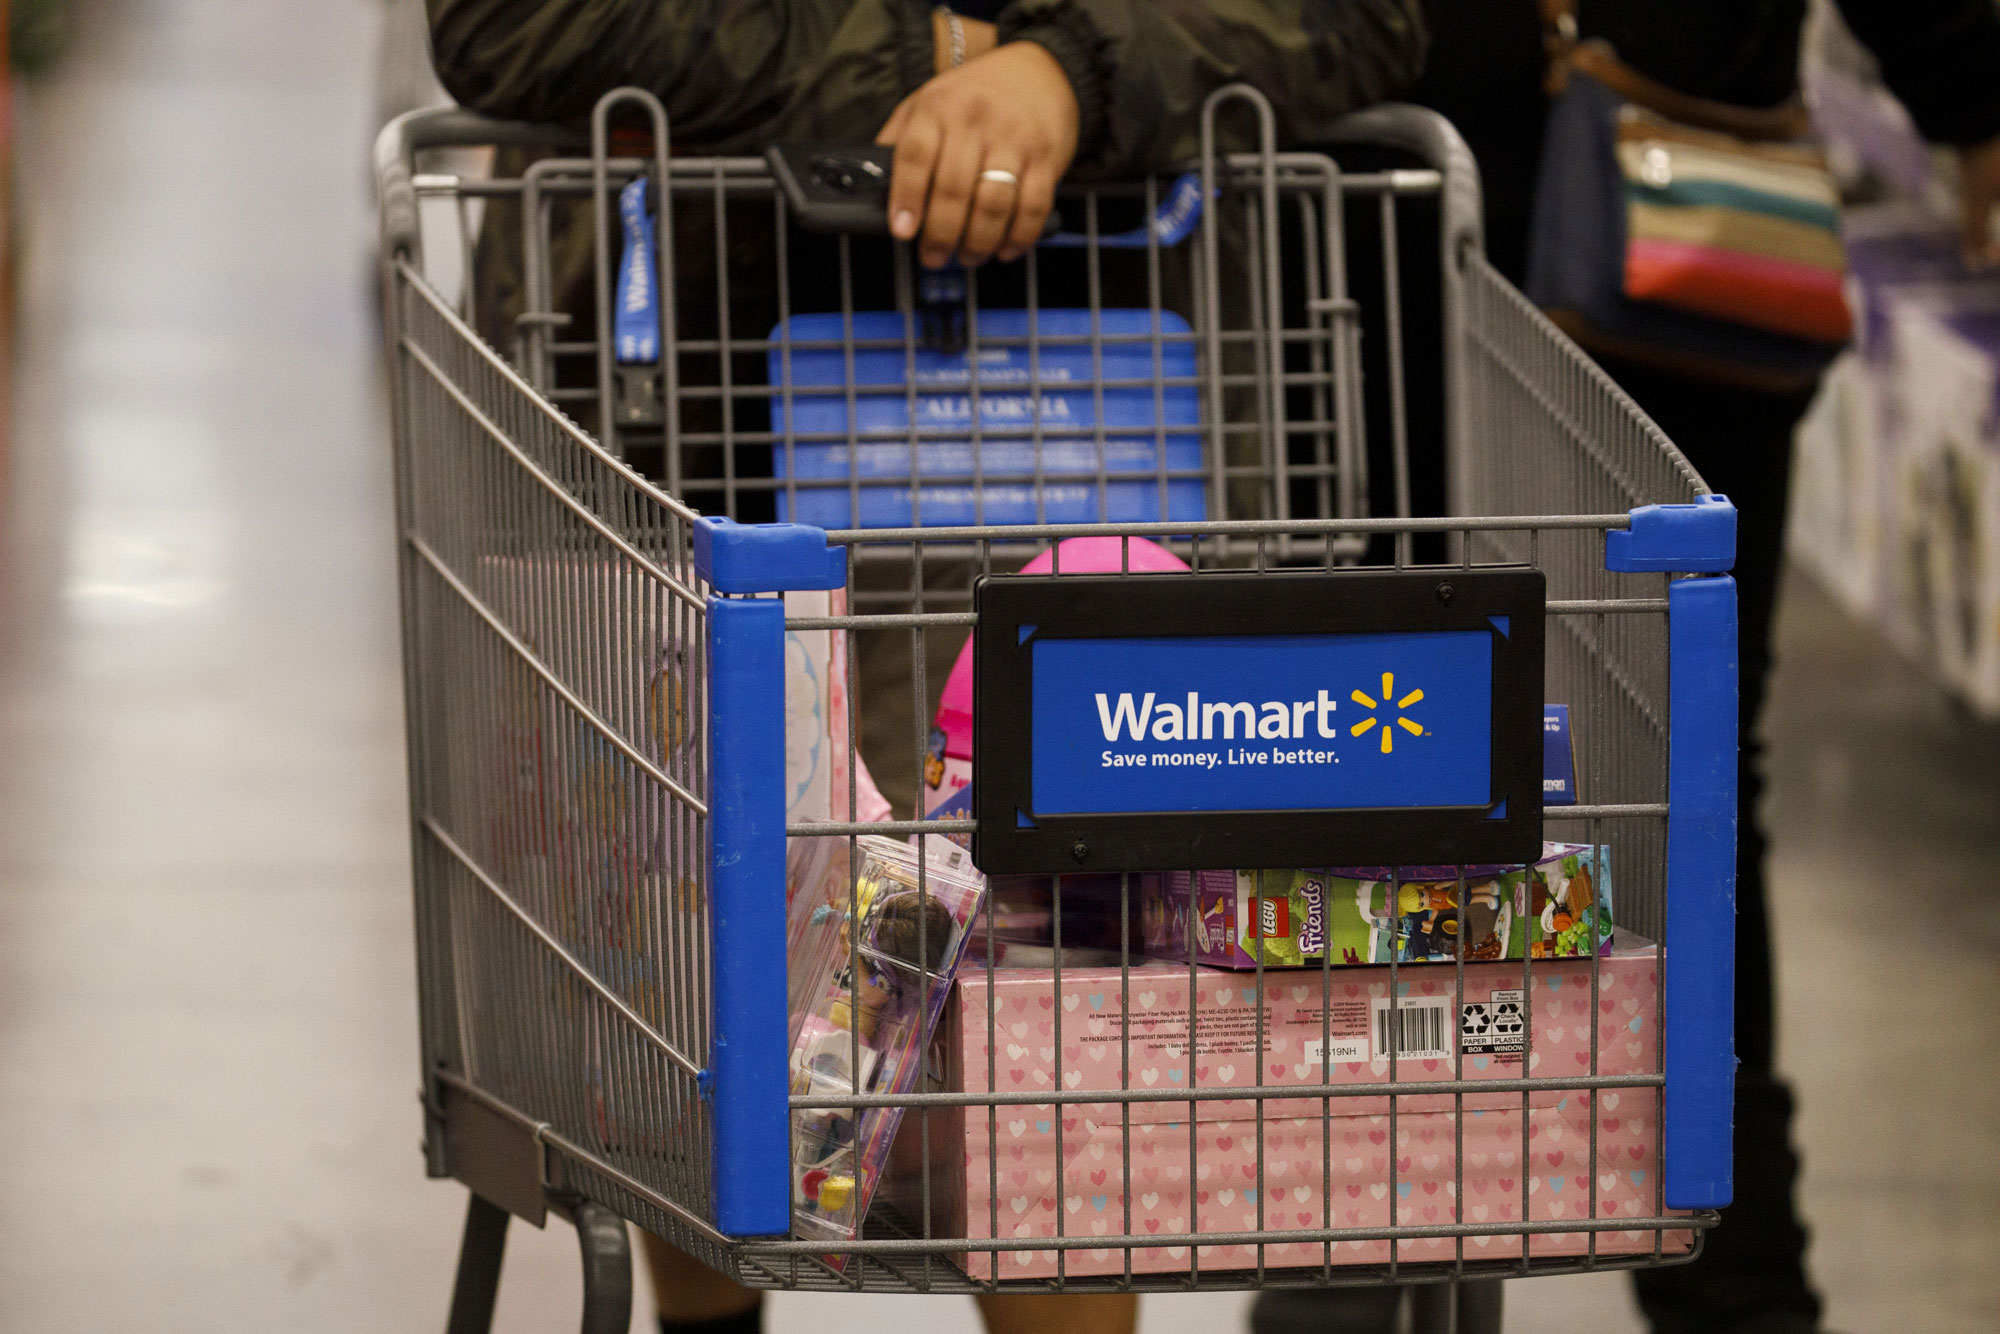 As the U.S. shuts down, Walmart steps up